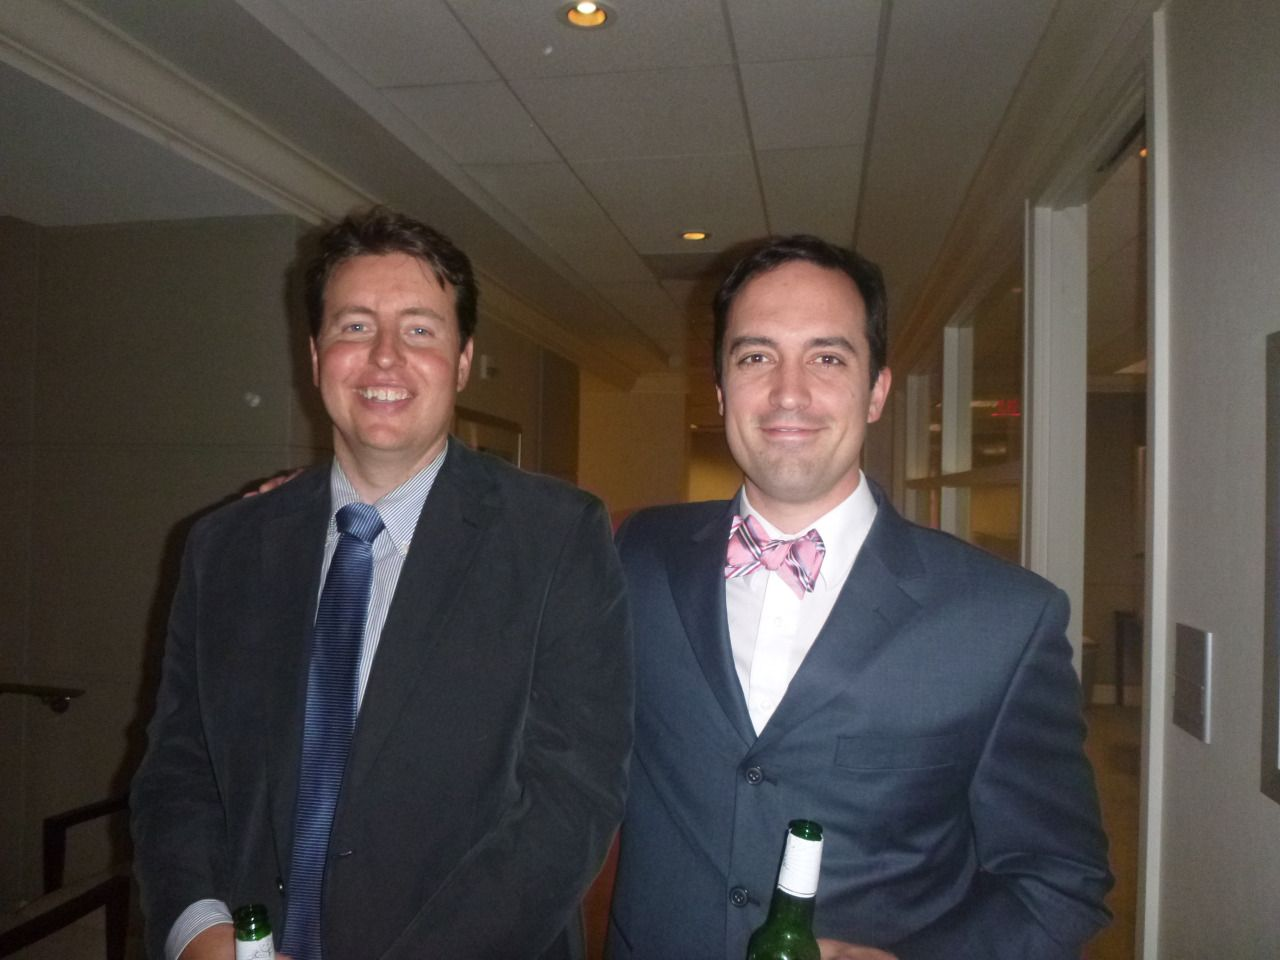 Attorney Evan Guthrie with Sean Markham of Markham Law Firm